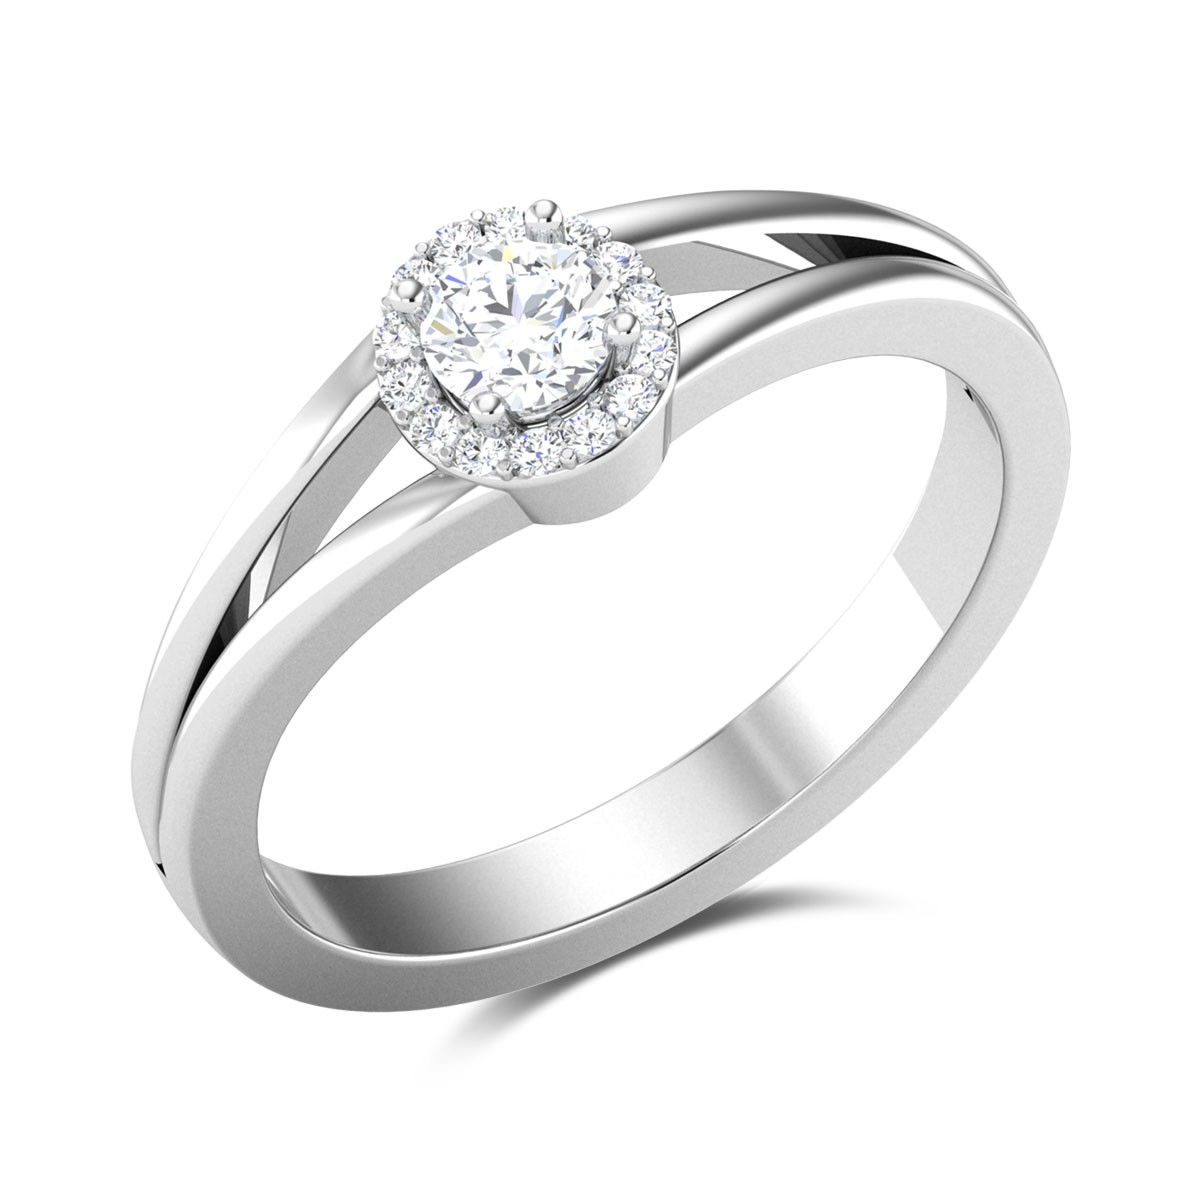 Marcelo Diamond 4 Prong Solitaire Ring